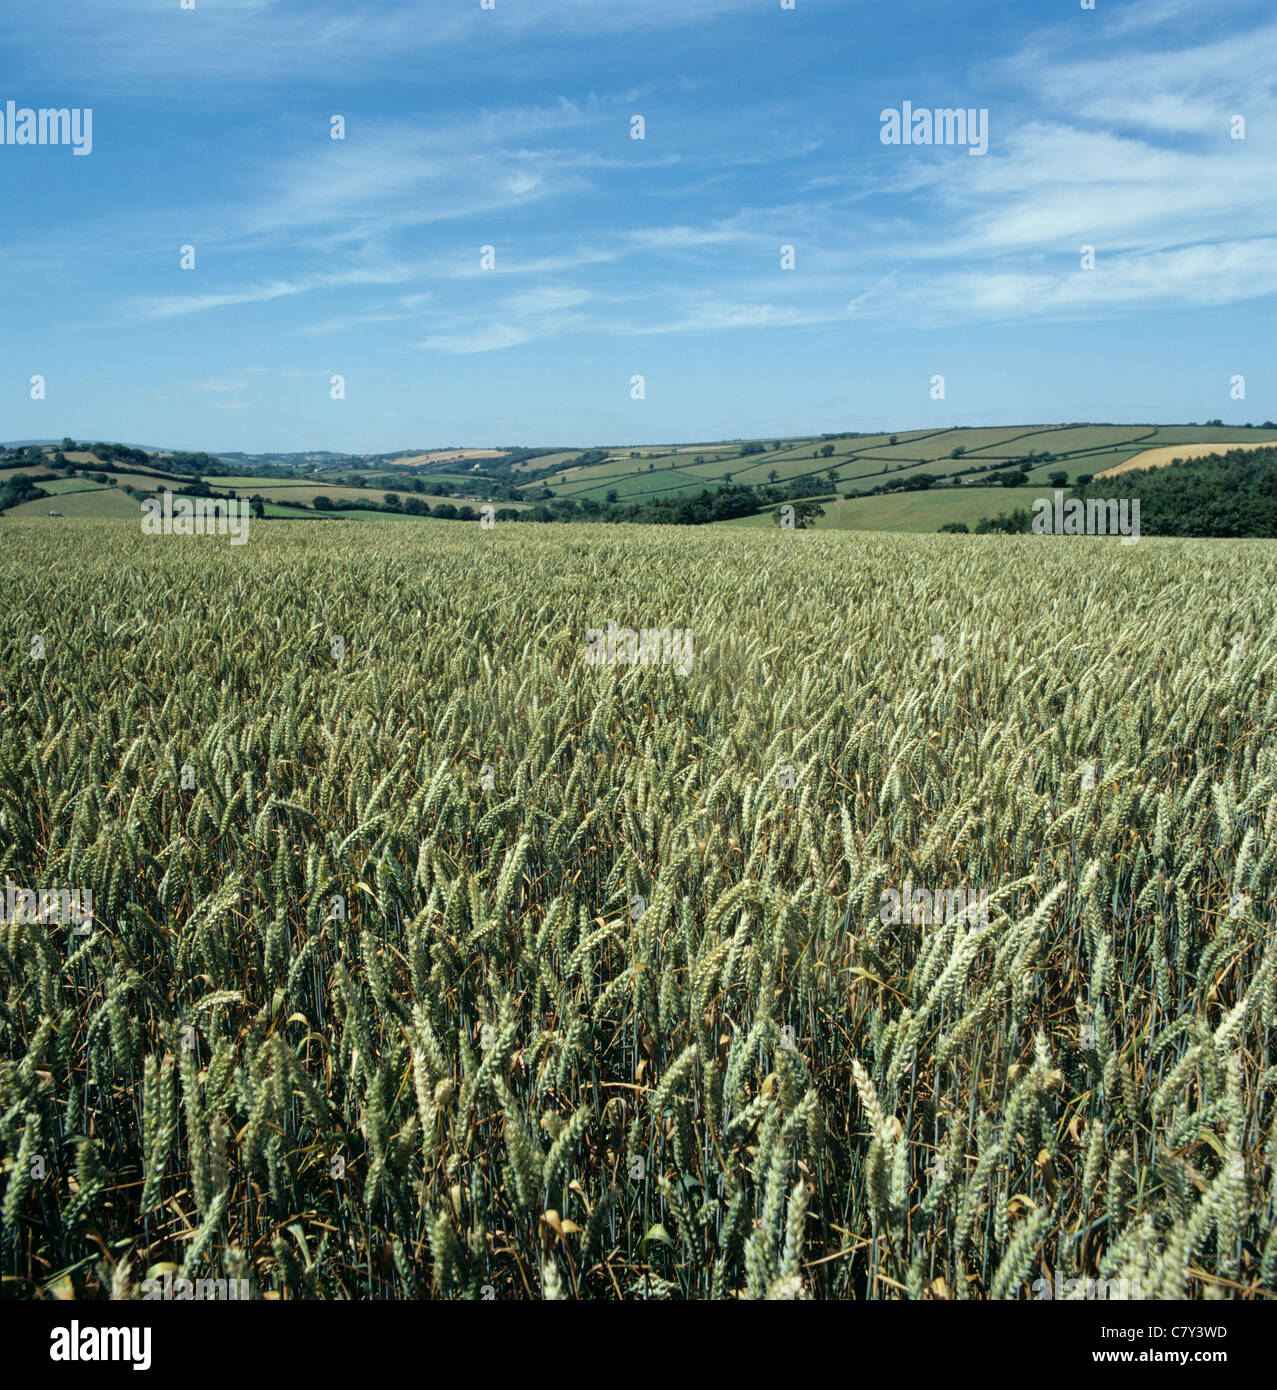 Wheat crop in ear and rolling farmland, North Dartmoor, Devon - Stock Image